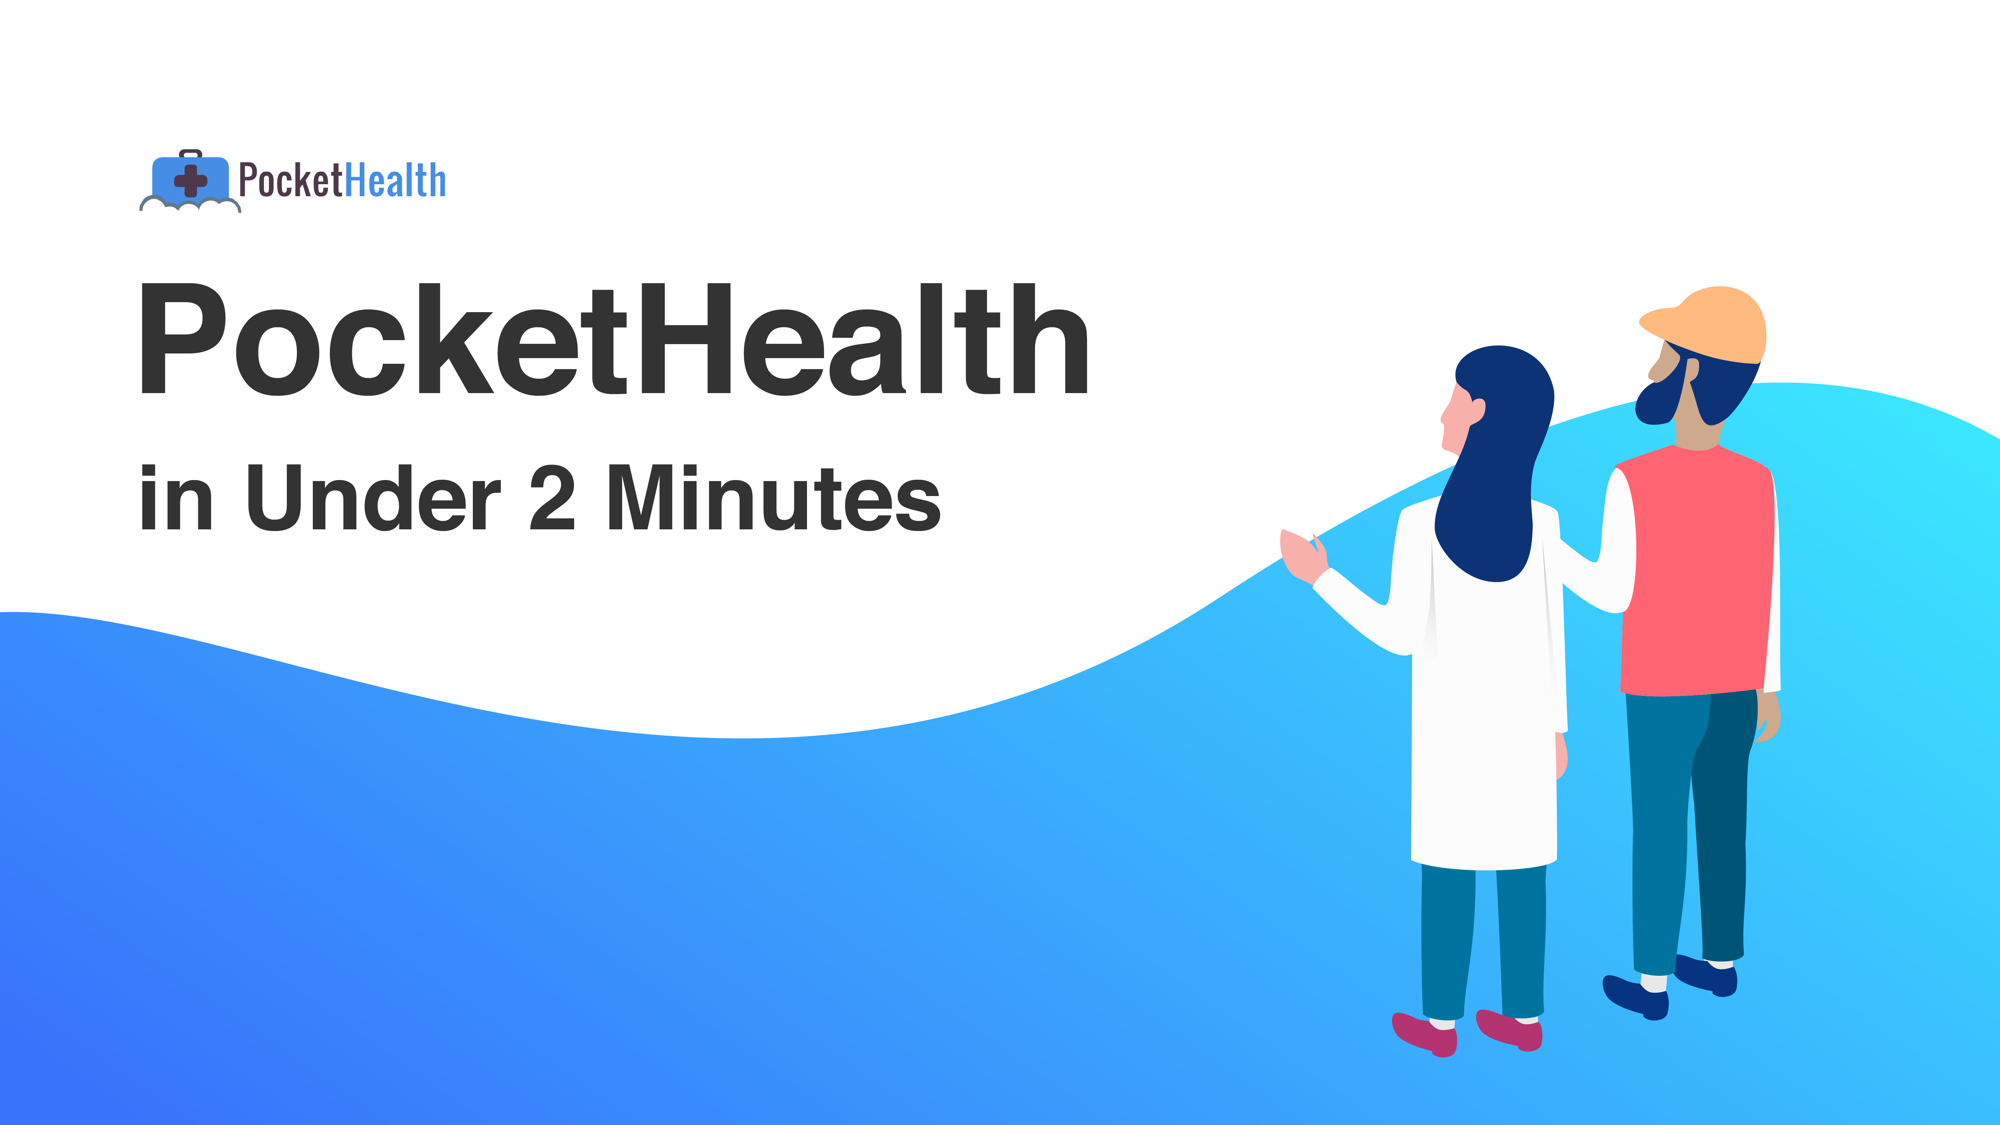 Video: PocketHealth in under 2 minutes